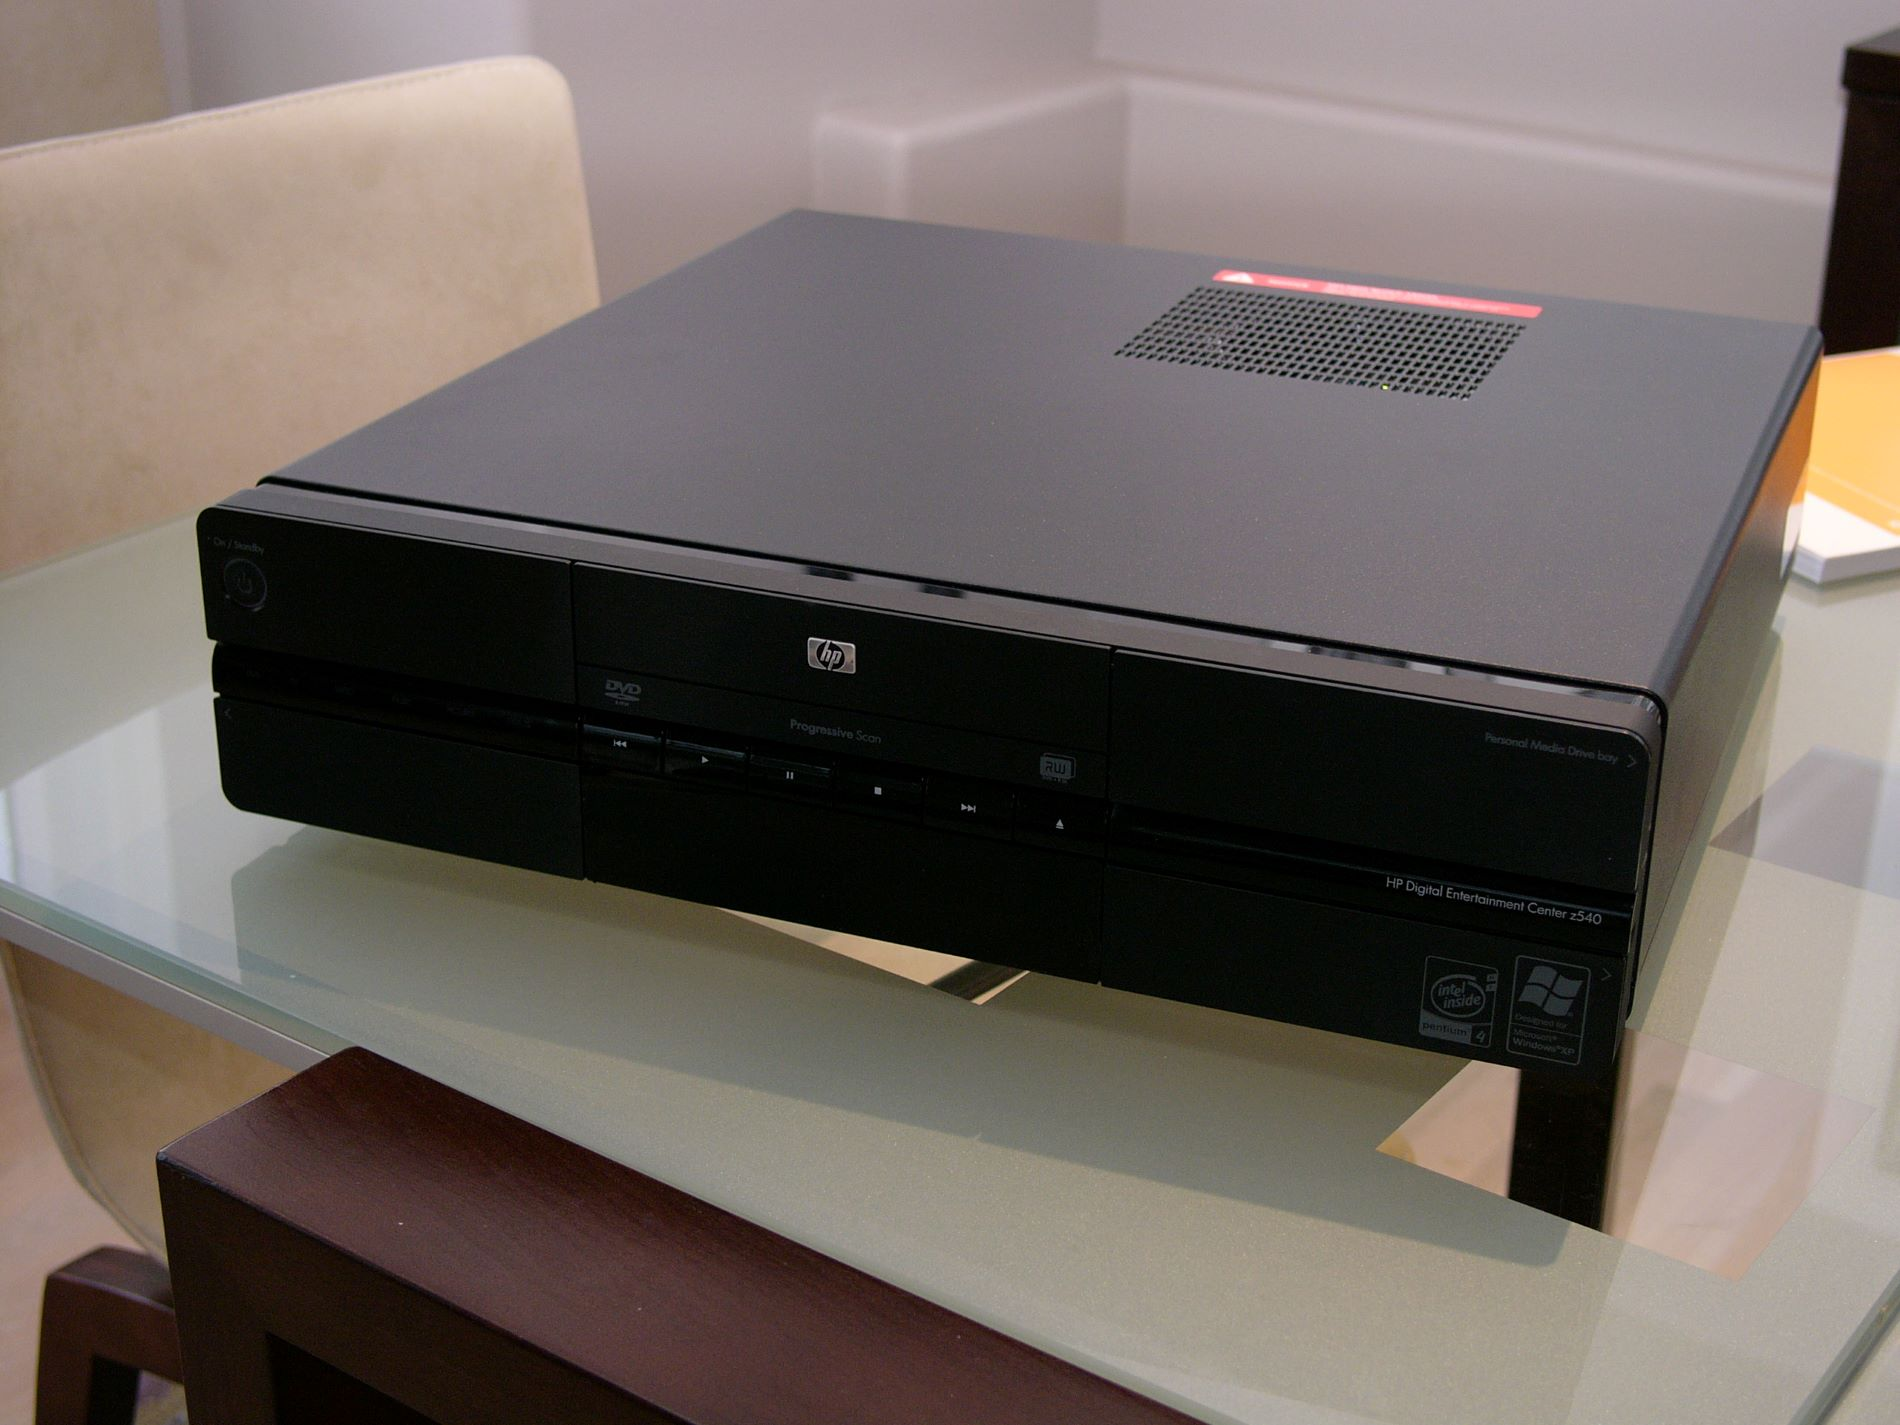 The HP z540 looks like a piece of stereo gear.